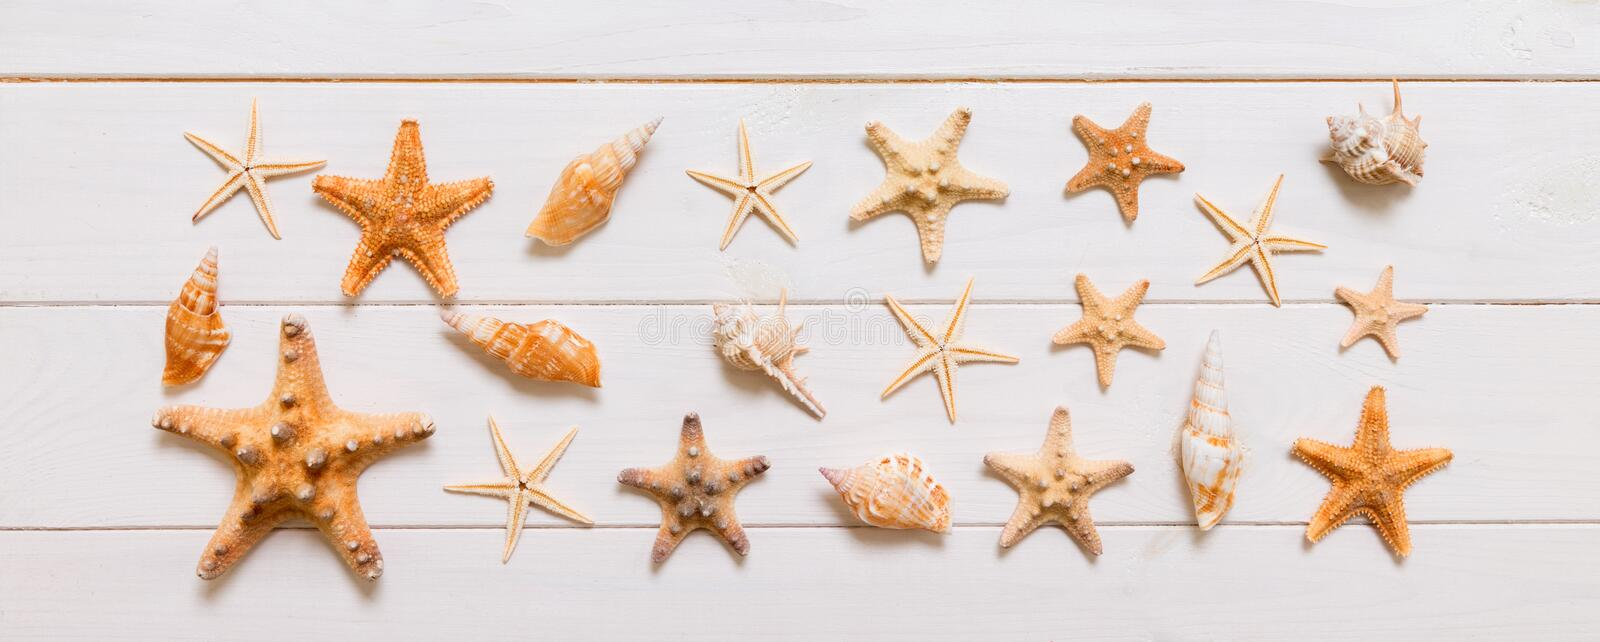 Top view of starfish and many seashells on white wood texture background top view. Copy space background, summer concept royalty free stock image